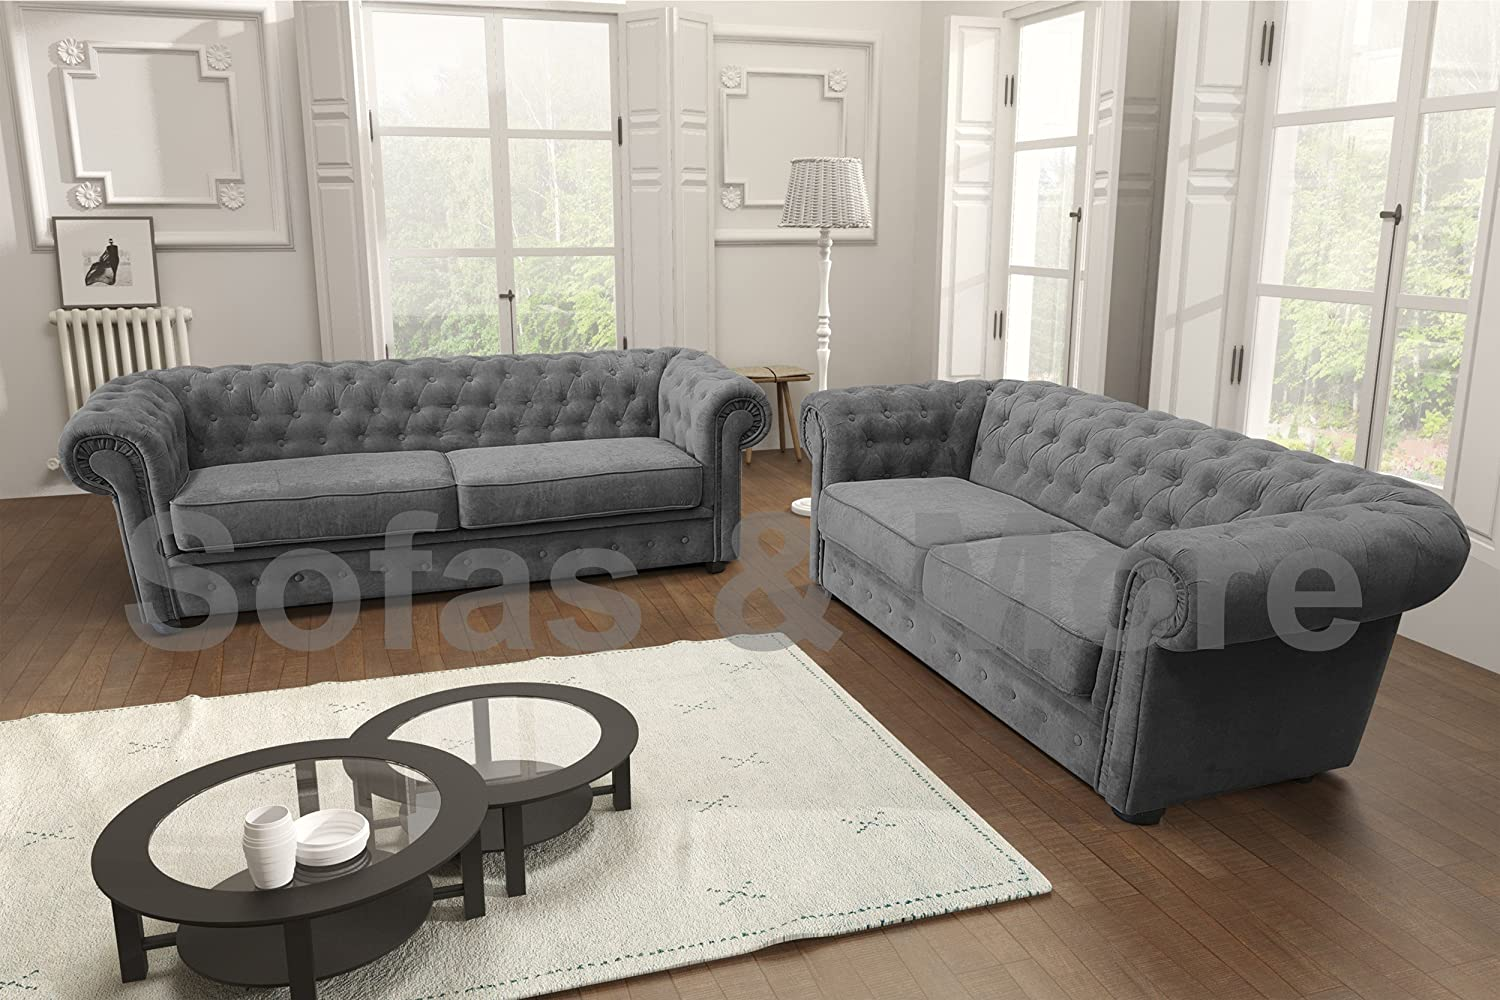 Cool Chesterfield Style Corner Sofa Set 3 2 Seater Armchair Grey Fabric 3 2 Seater Customarchery Wood Chair Design Ideas Customarcherynet